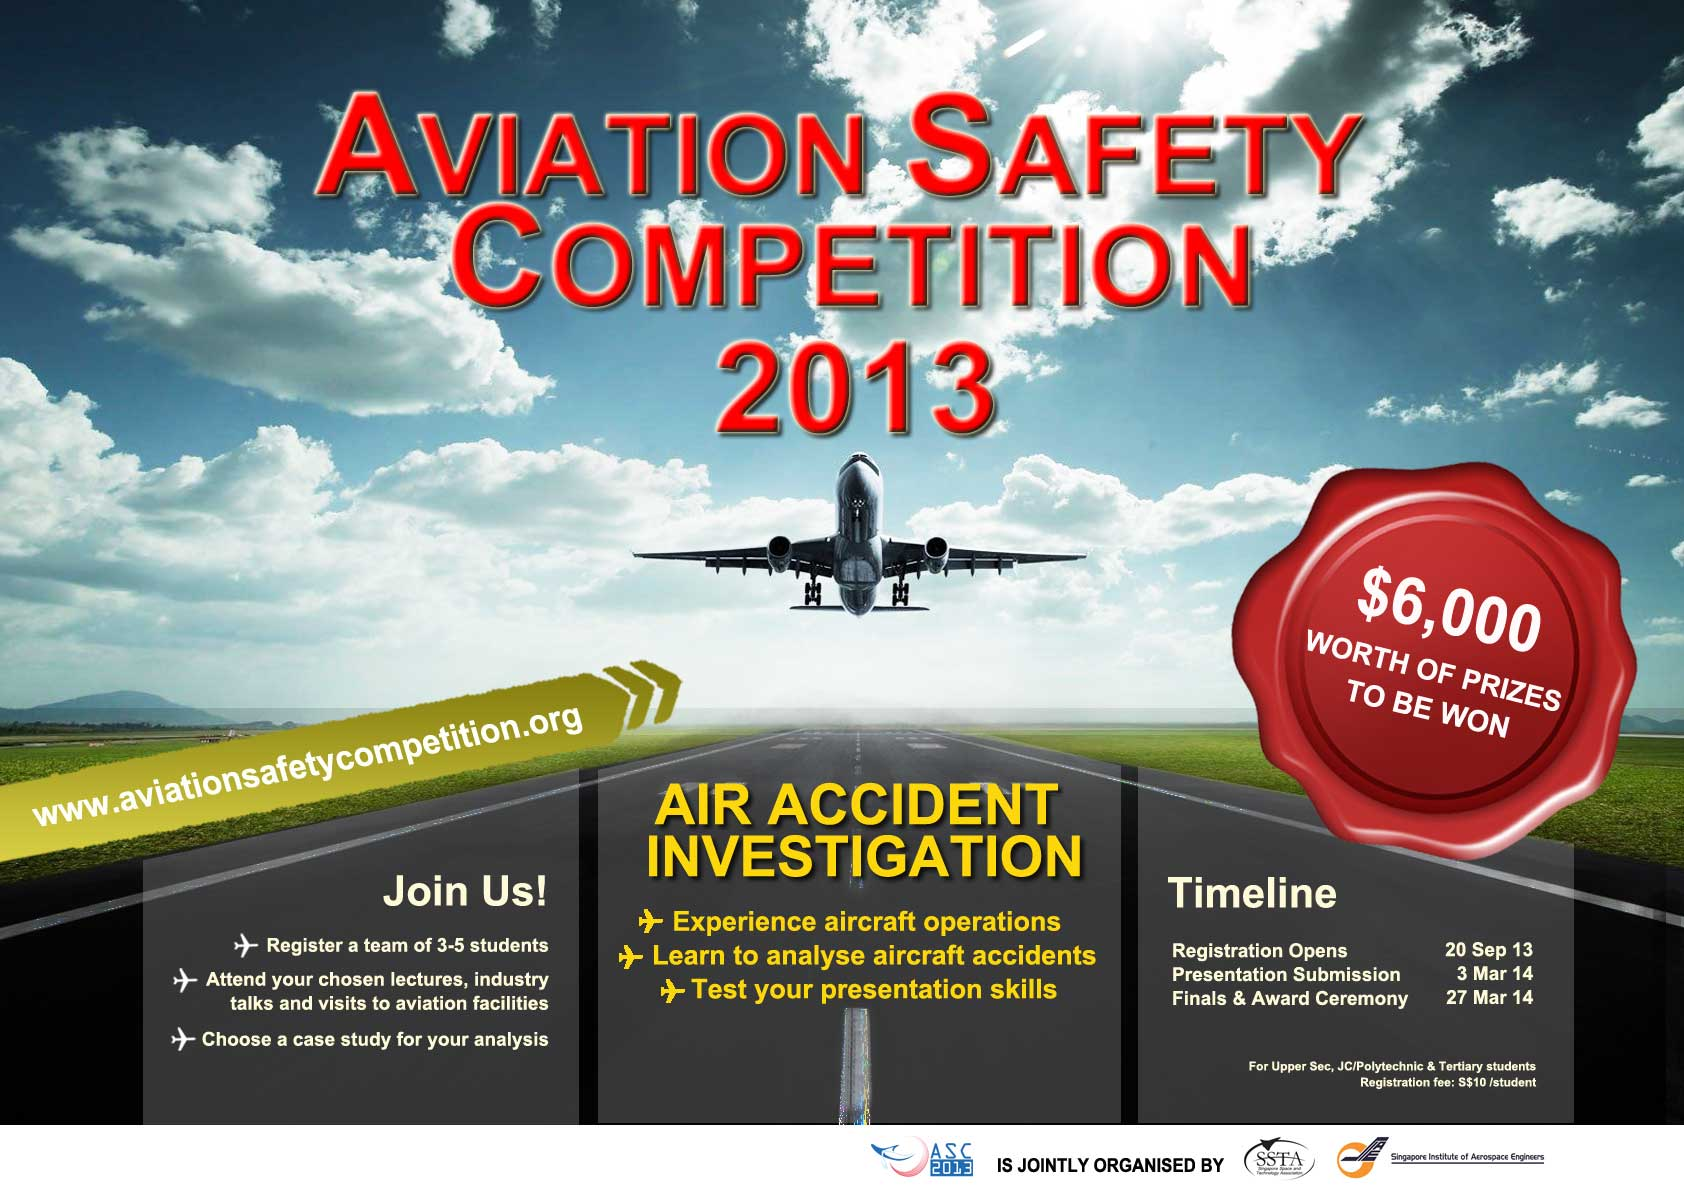 aviation saftey 2017- 2018 aviation safety + security program new flight data course cyber security in avsec industry leading accident investigation lab practical sms implementation.